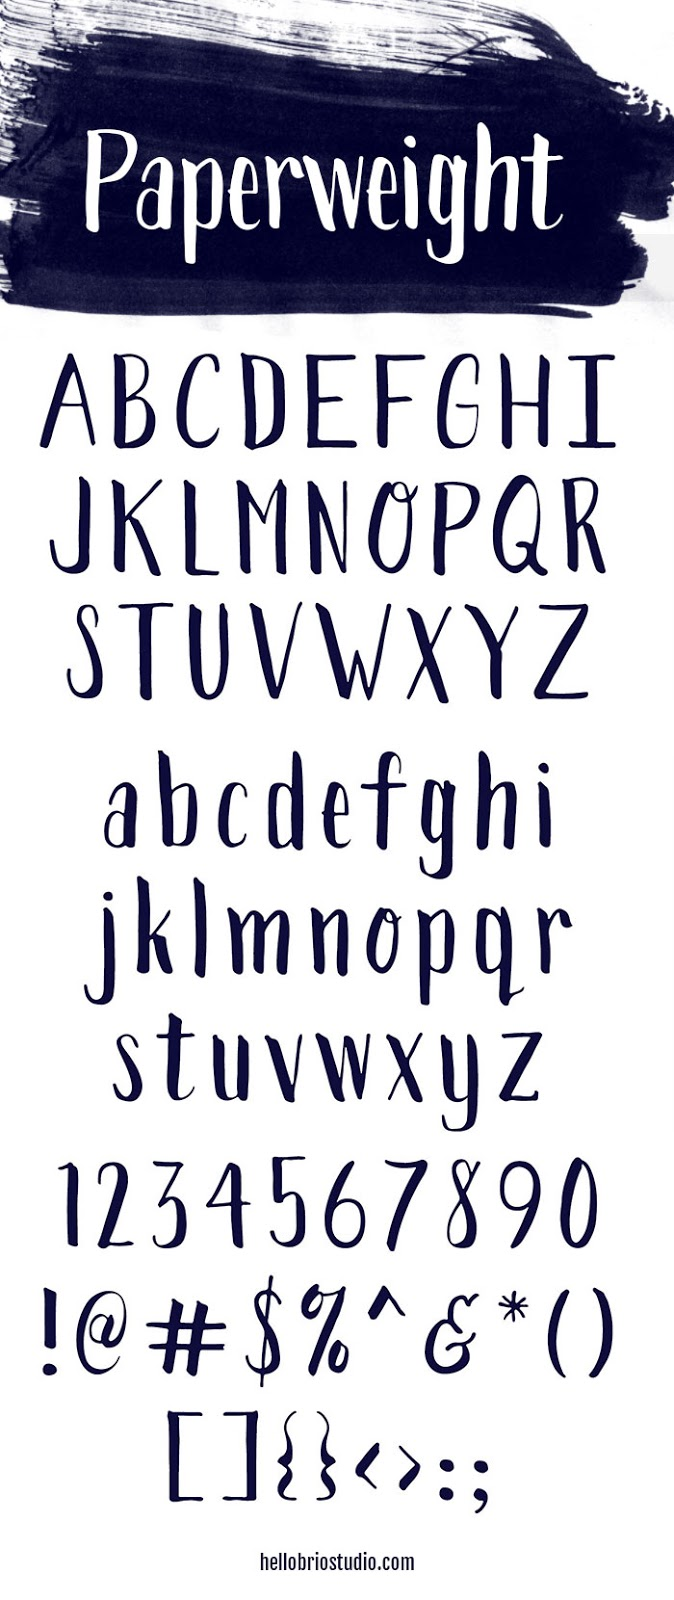 Paperweight Font by Jennifer Coyle at Hello Brio Studio